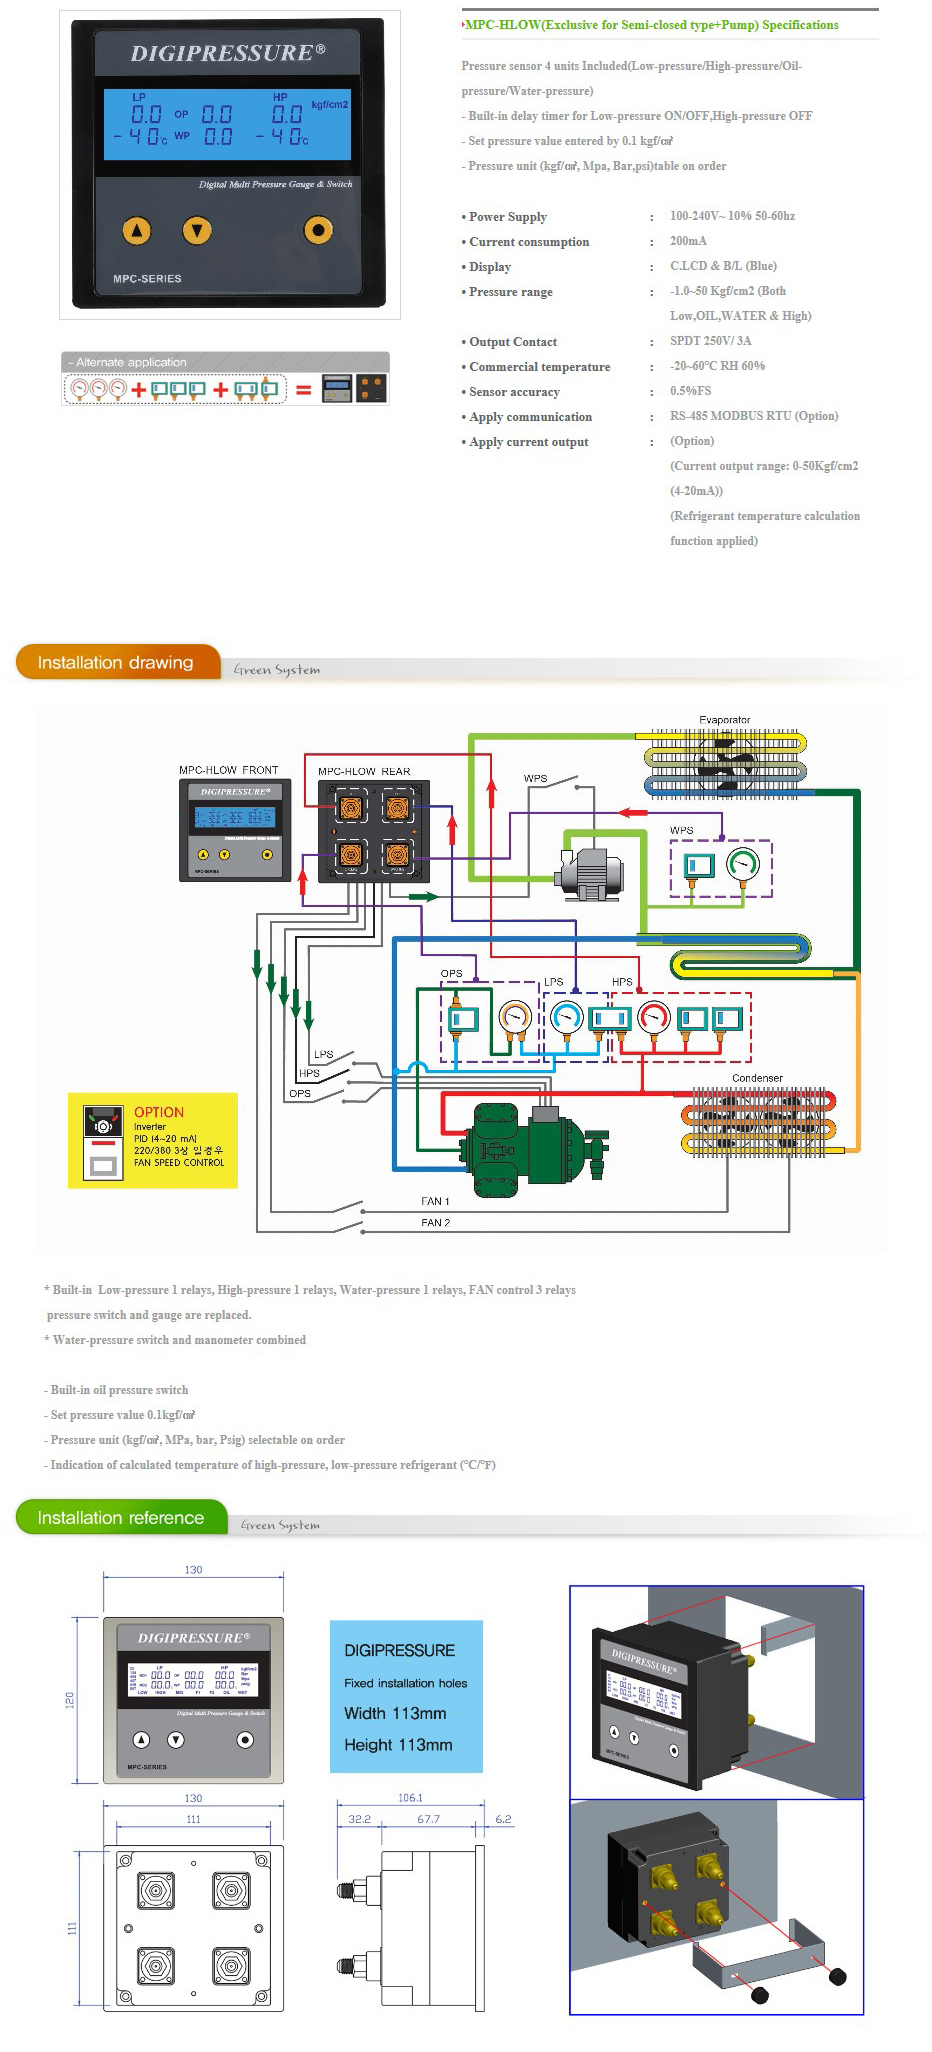 GREEN SYSTEM Digital Pressure (Exclusive for Semi-closed type+Pump) MPC-HLOW